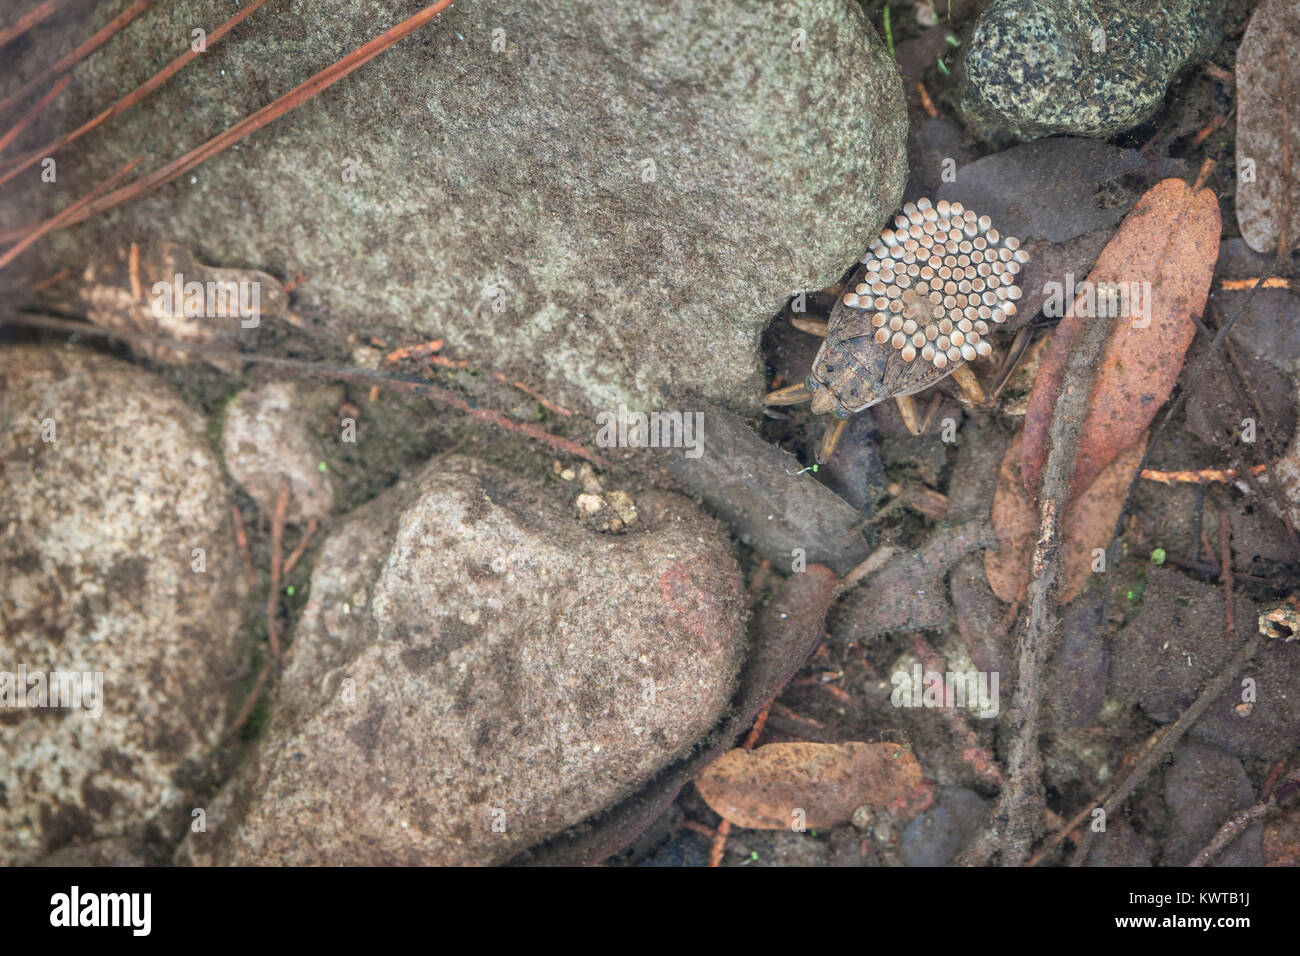 Male giant water bug (aka, toe-biter, family Belostomatidae, Order Hemiptera) transporting and guarding eggs that - Stock Image